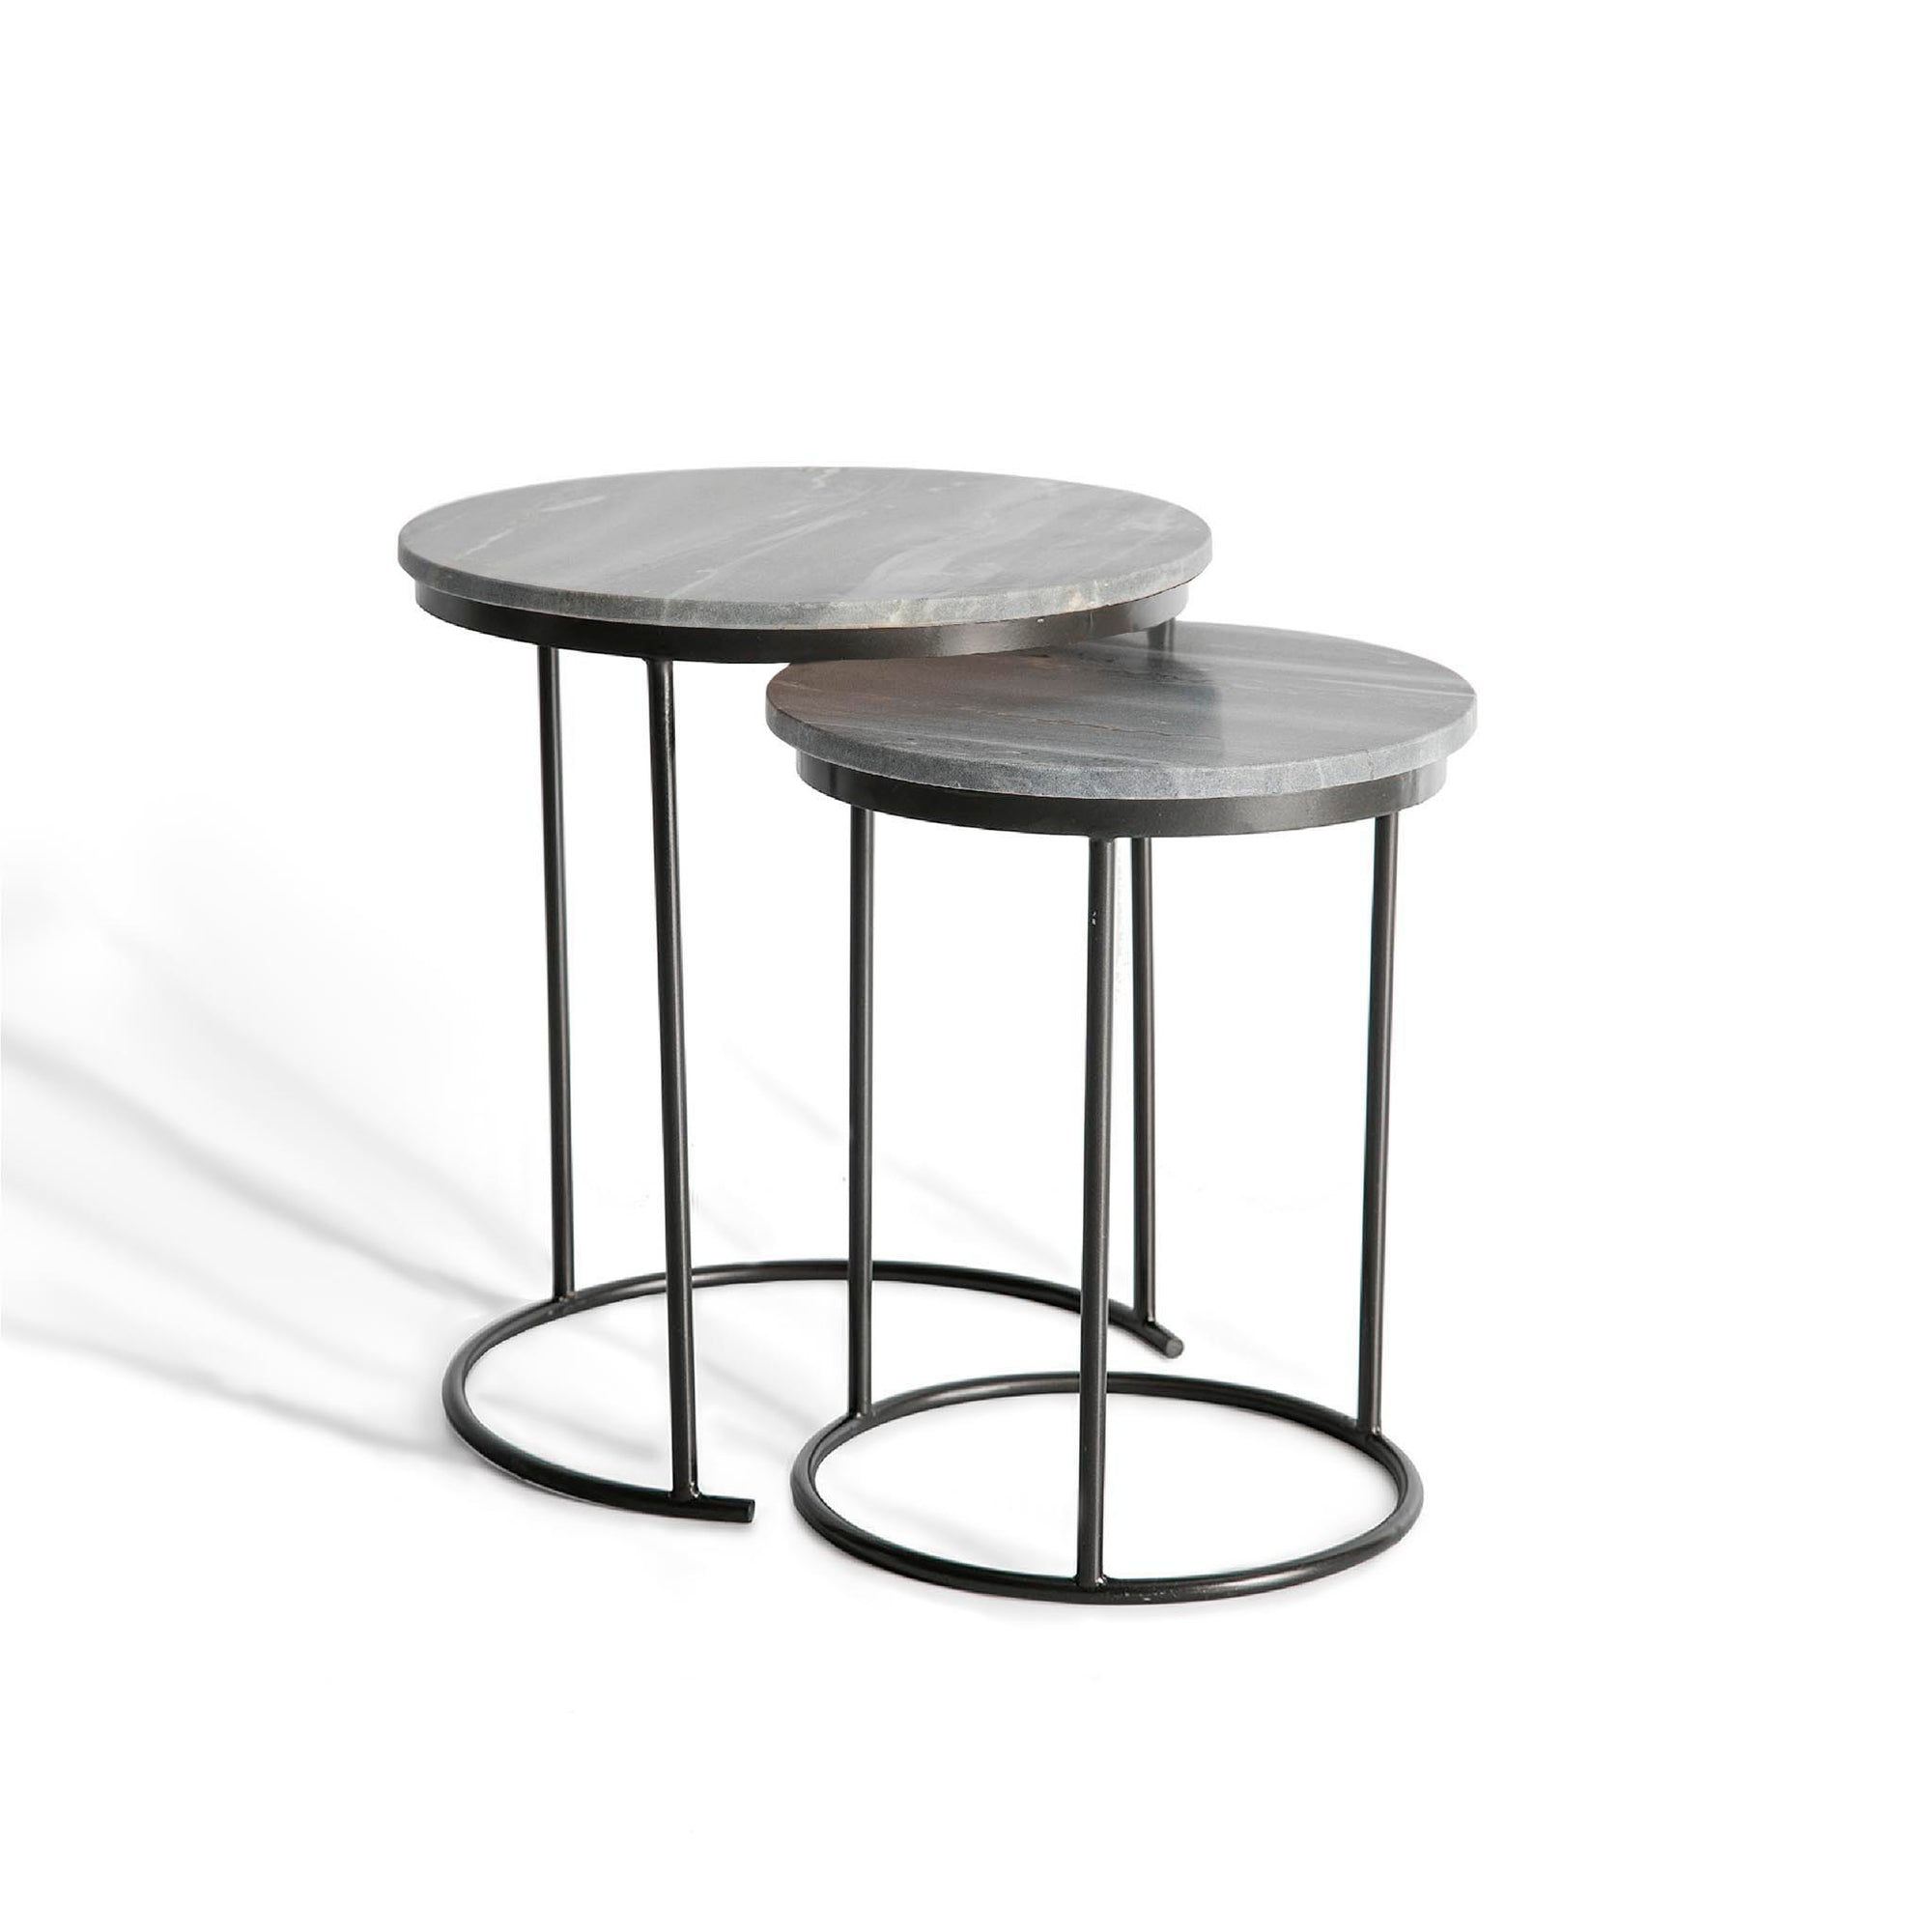 Kandla Grey Round Marble Topped Nest of Tables with Grey Base